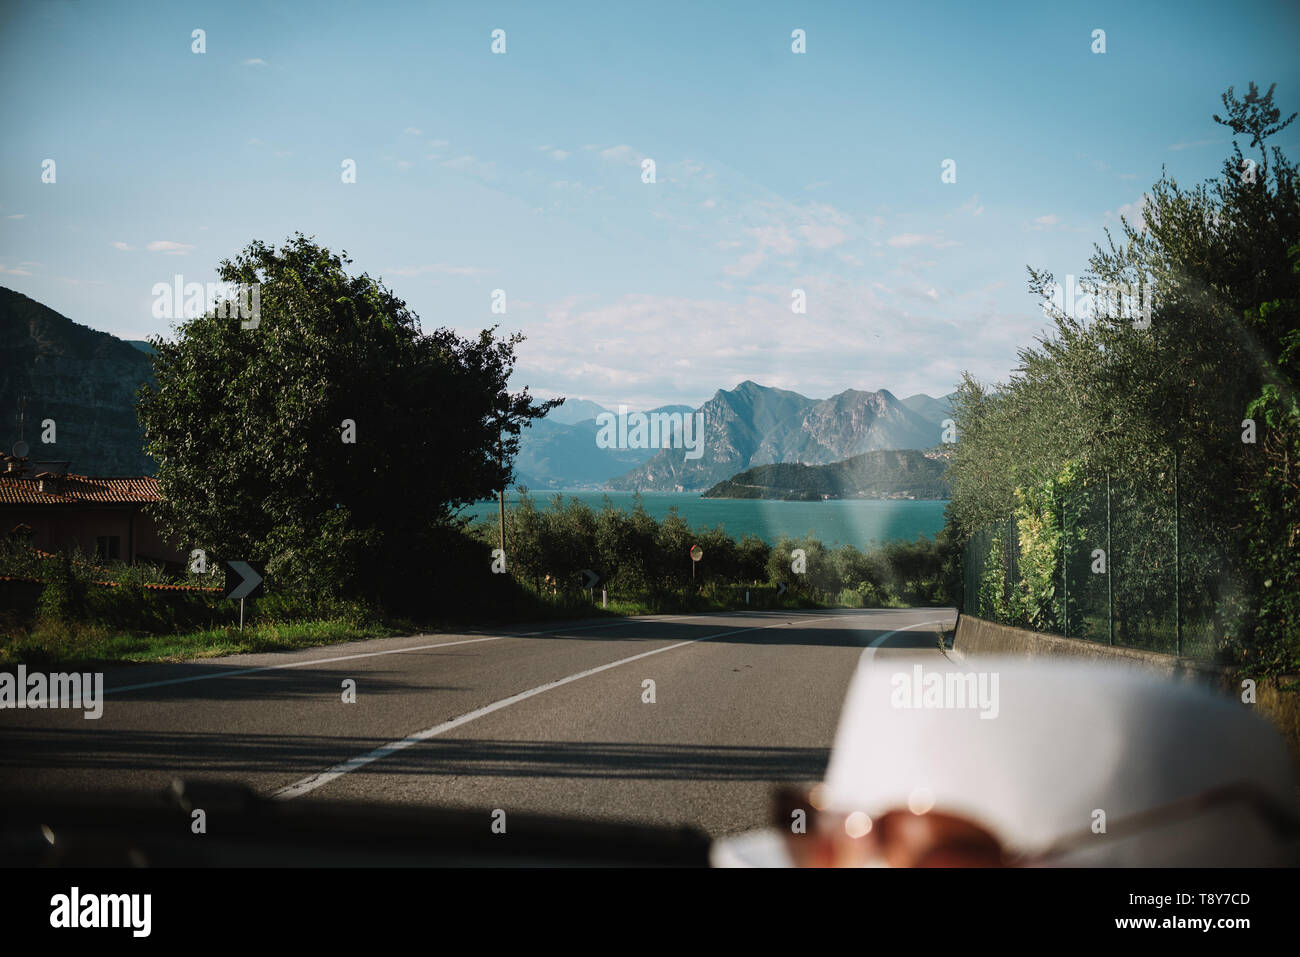 driving a car through Lobardy in Italy, Lake Iseo - Stock Image